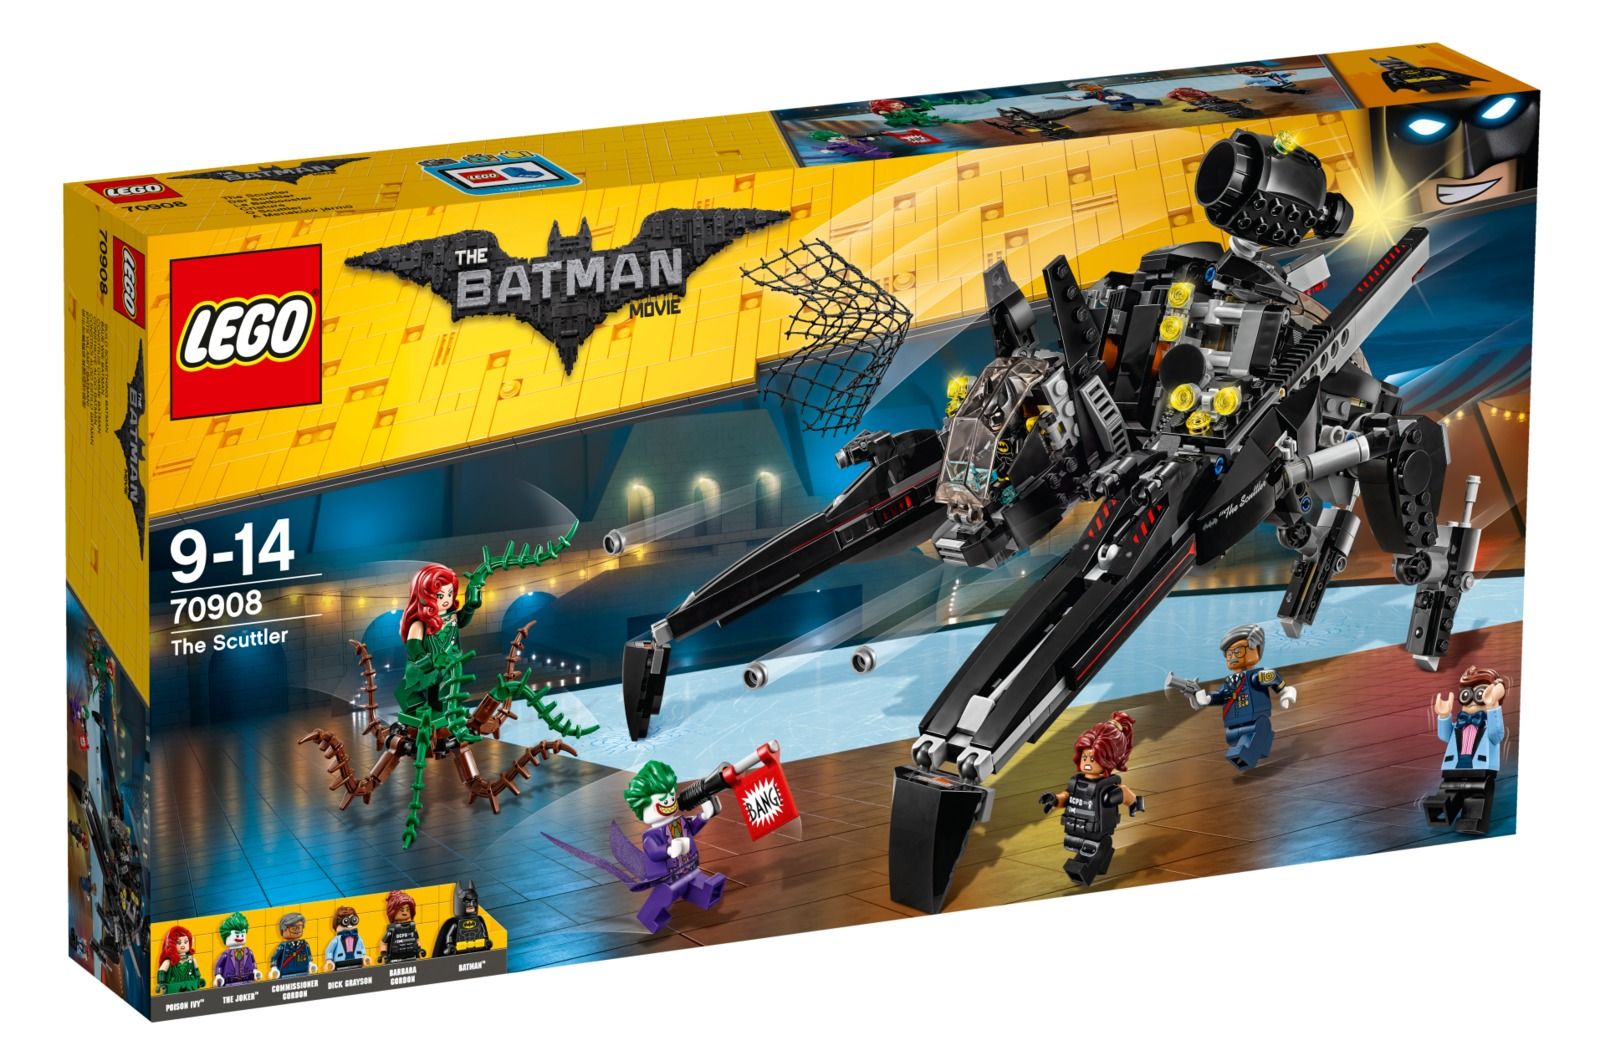 LEGO Batman Movie: The Scuttler (70908) image